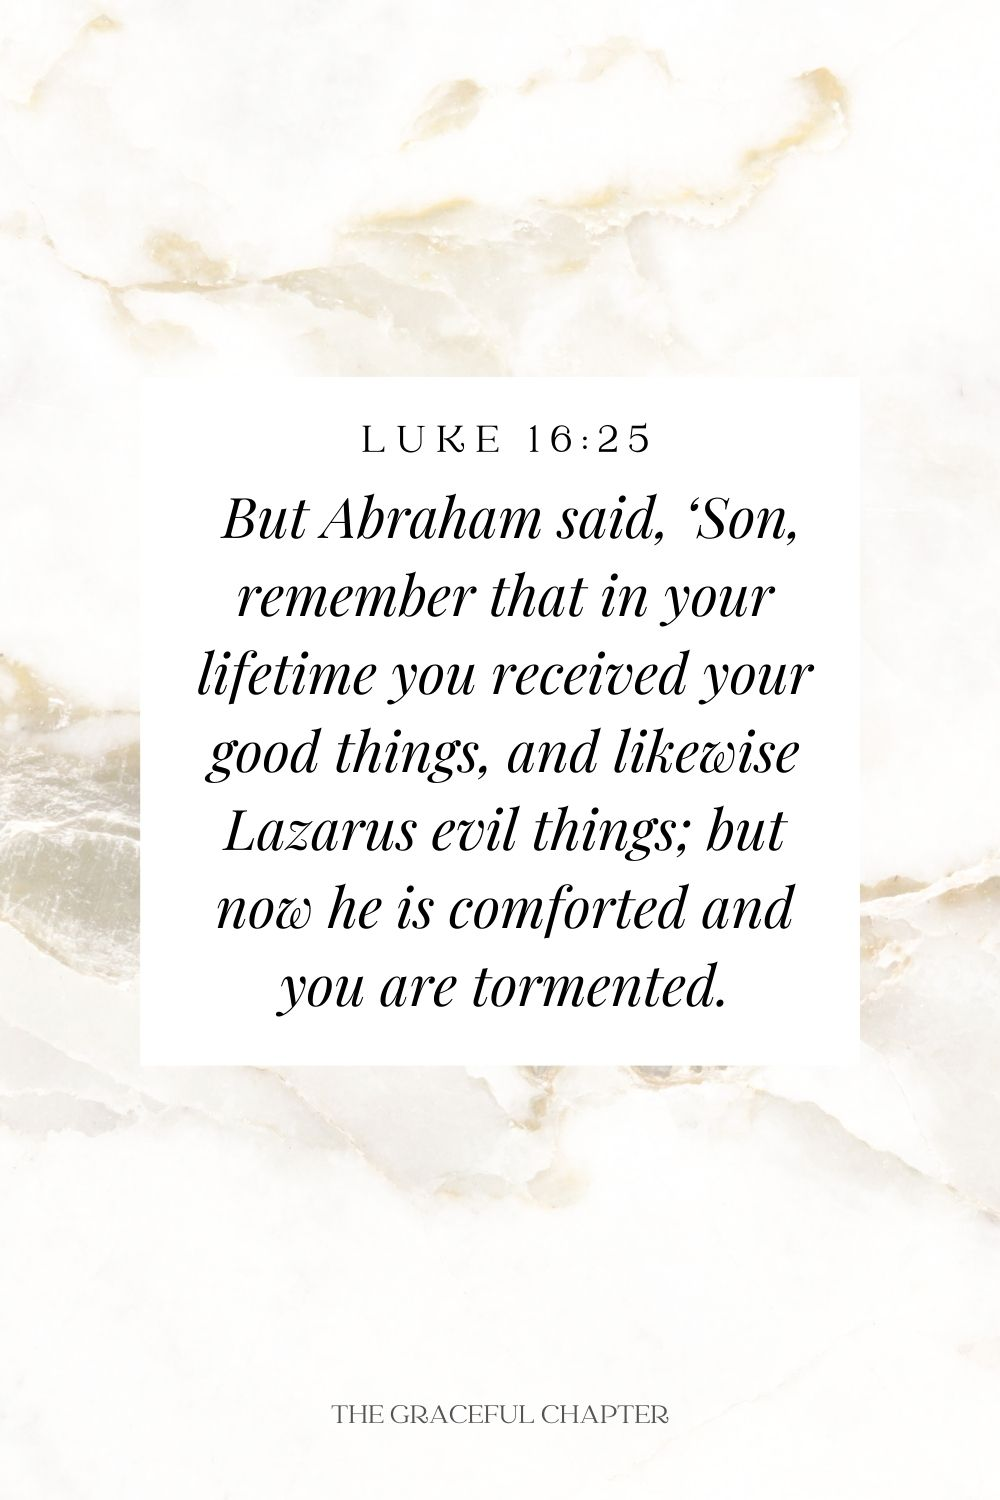 But Abraham said, 'Son, remember that in your lifetime you received your good things, and likewise Lazarus evil things; but now he is comforted and you are tormented. Luke 16:25